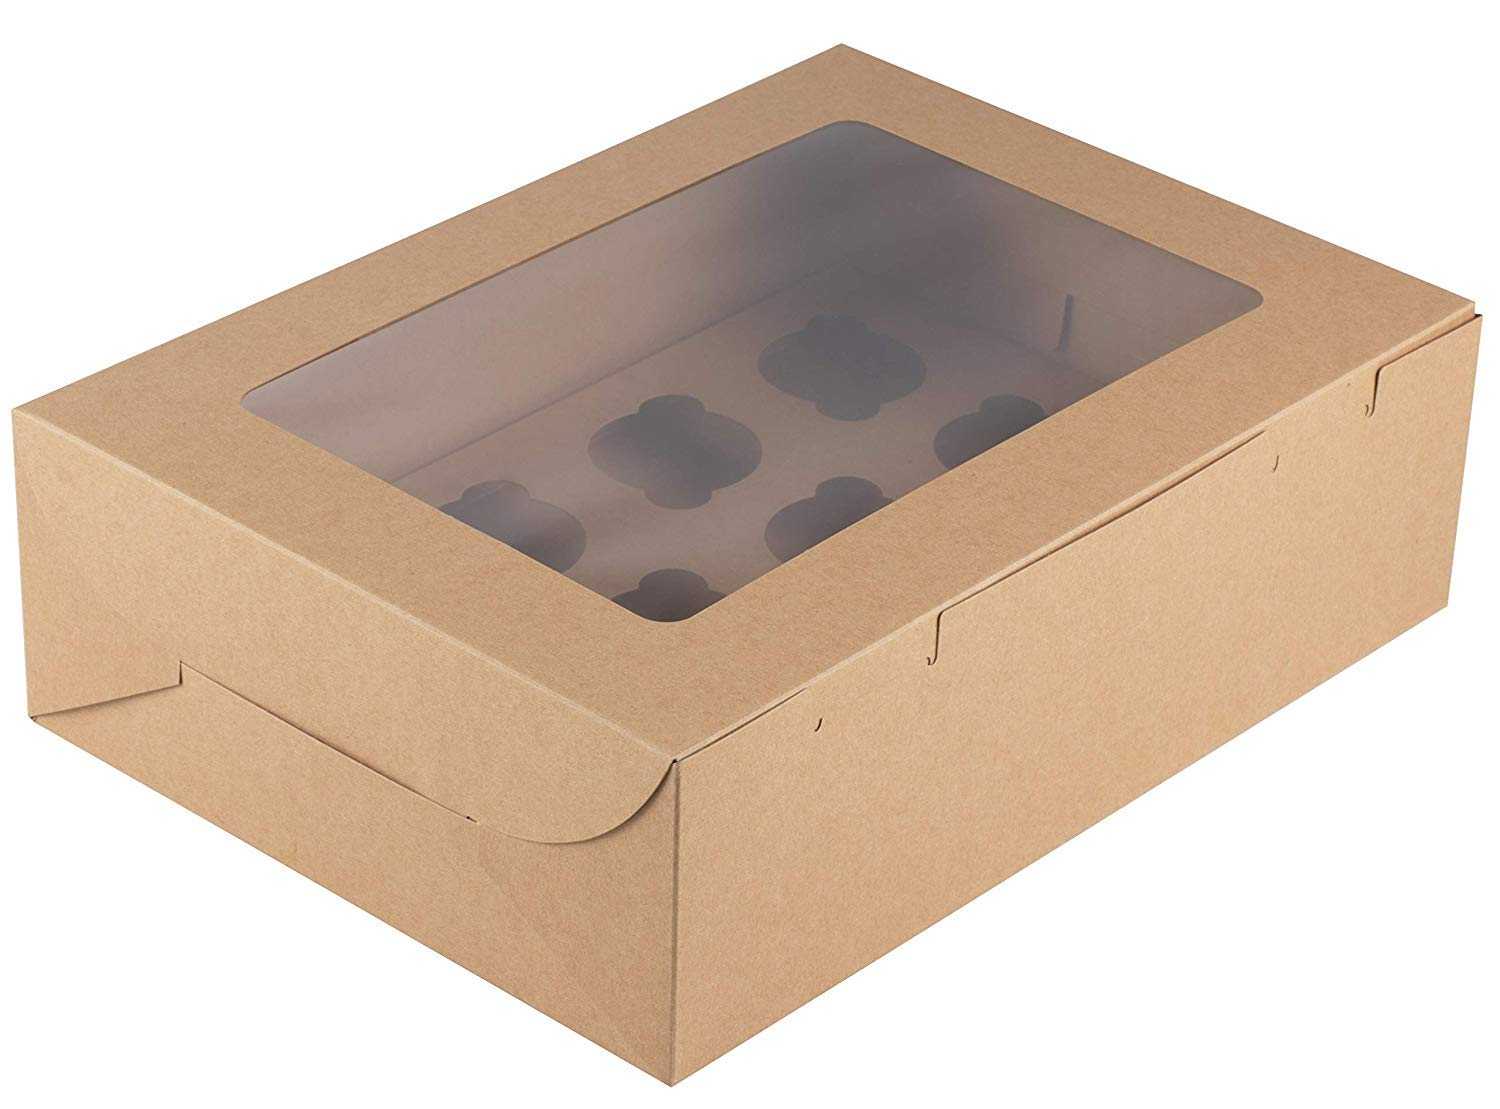 Cupcake Boxes - 50-Pack Large Cardboard Cupcake Boxes, Kraft Brown Bakery Box with Clear Window and Inserts, 12 Cavity, Disposable Take-Out Container, Bakeshop Supplies, 14 x 10 x 4 Inches